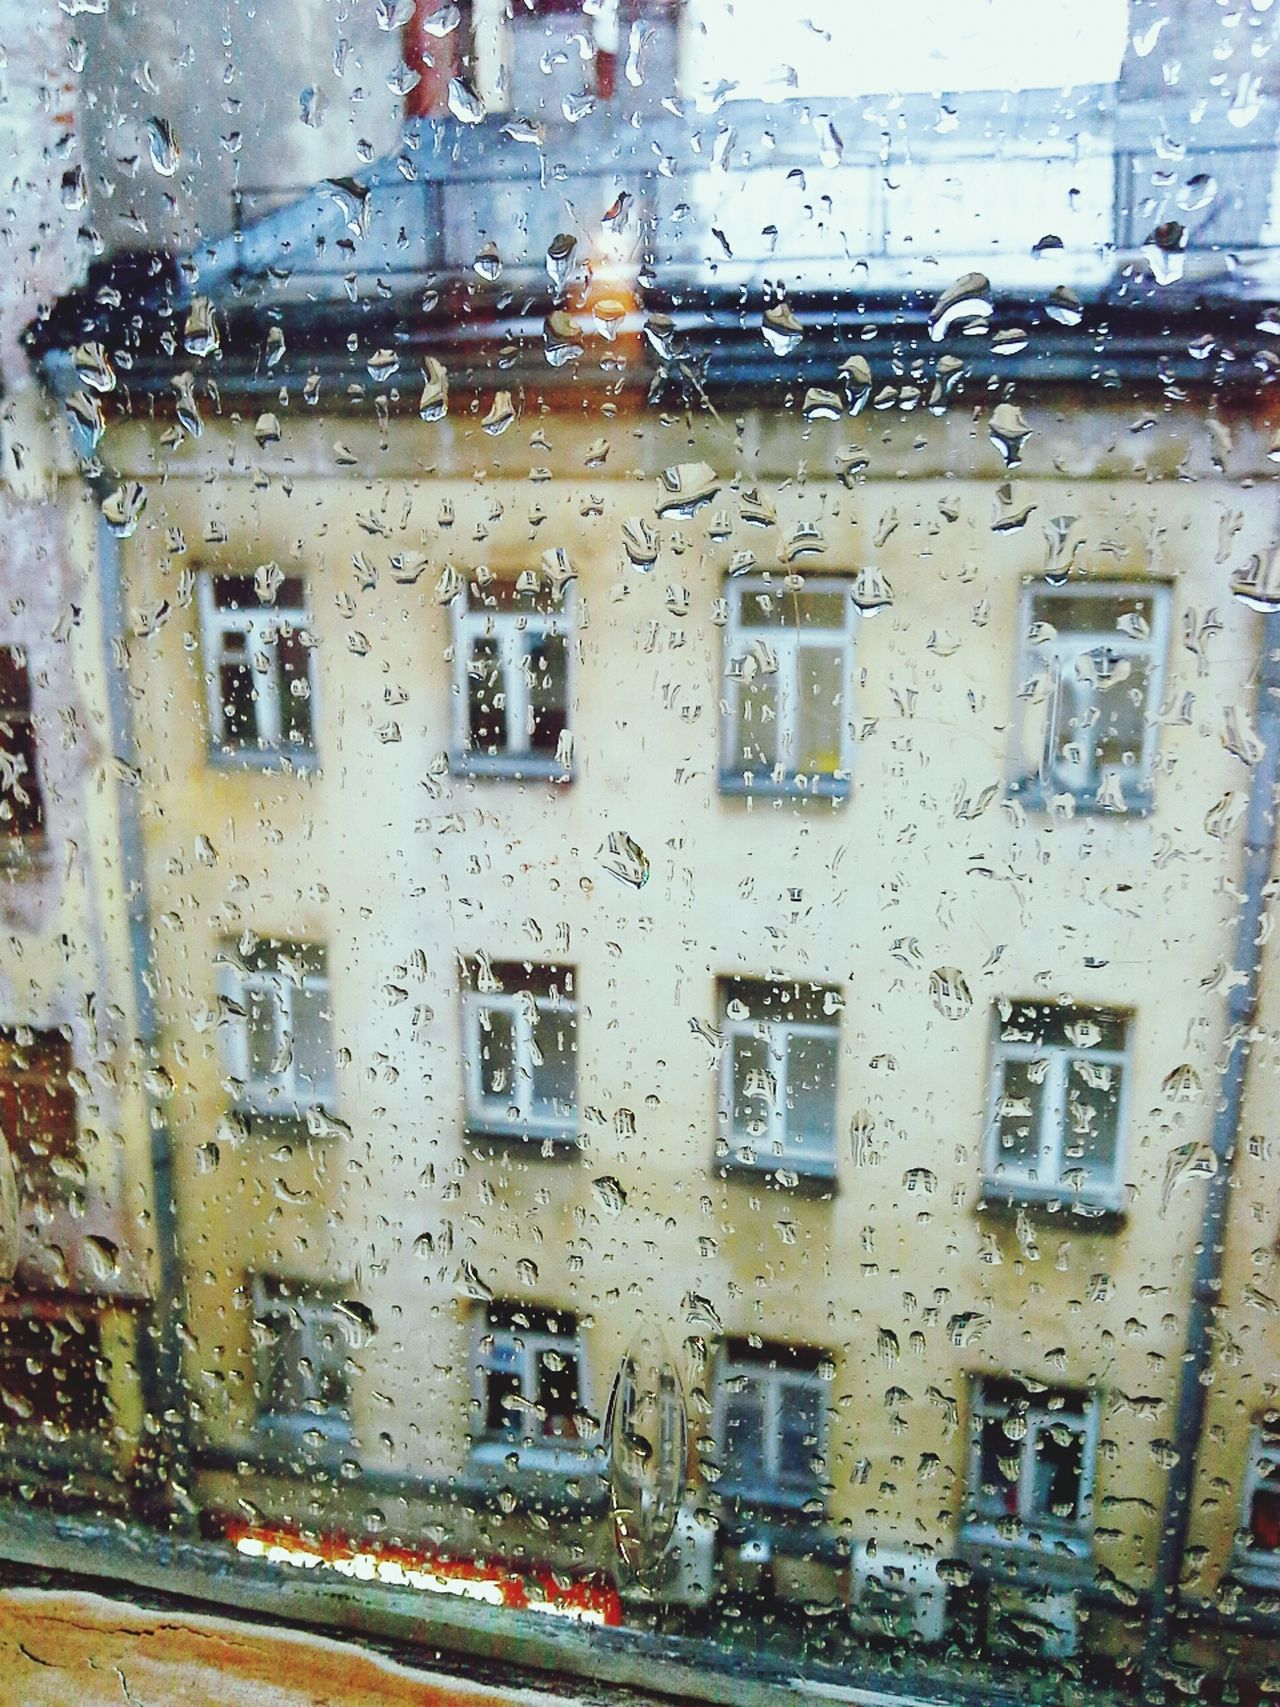 Rain Saint Petersburg загородный проспект Check This Out